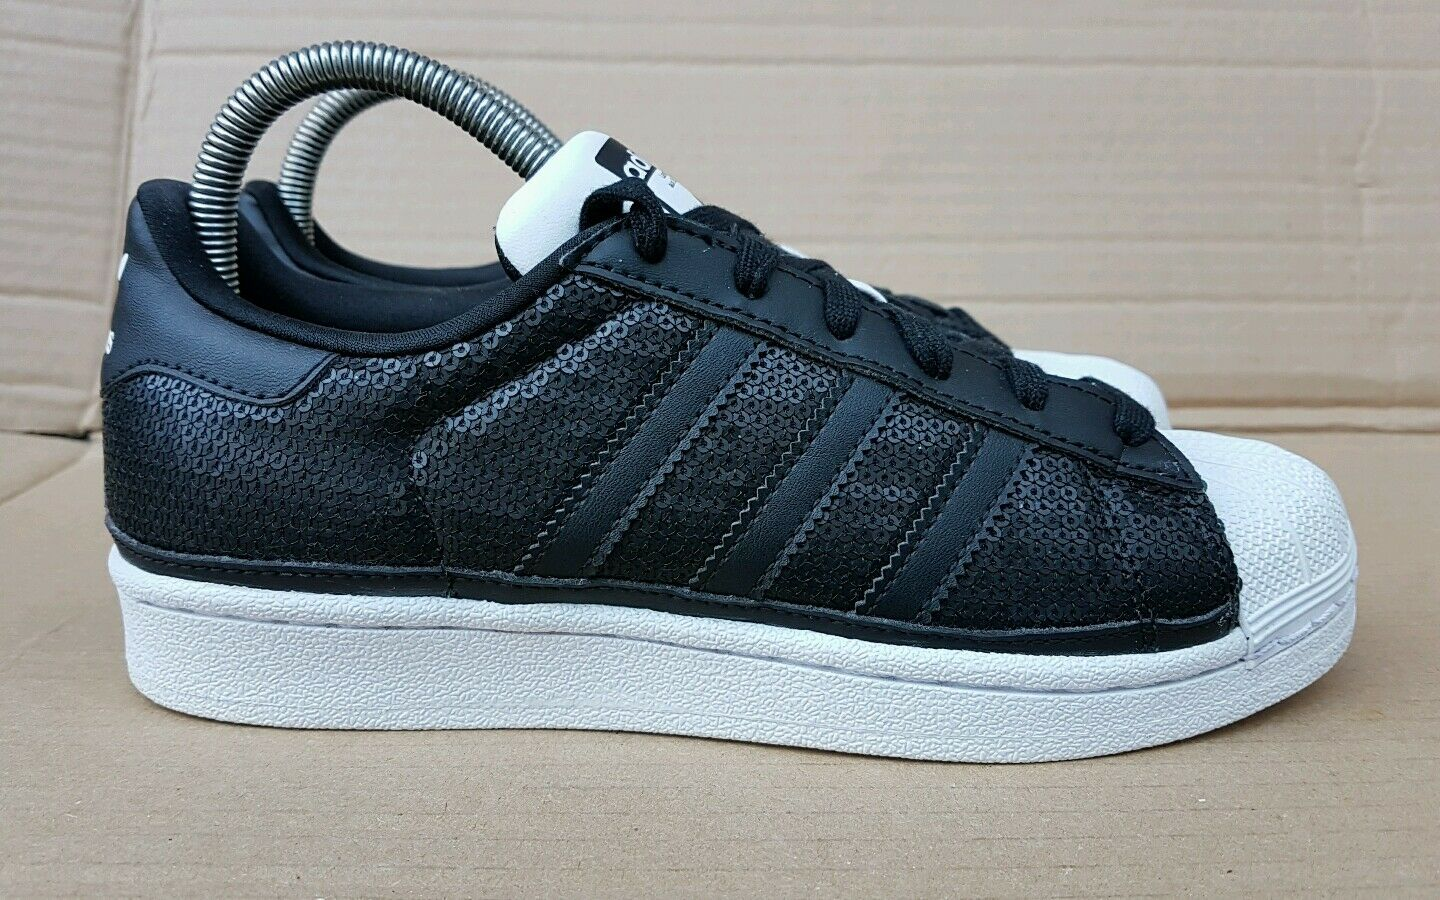 GORGEOUS ADIDAS ADIDAS GORGEOUS SUPERSTAR SHELL TOE TRAINERS IN SIZE 4 UK BLACK SEQUIN 41619d